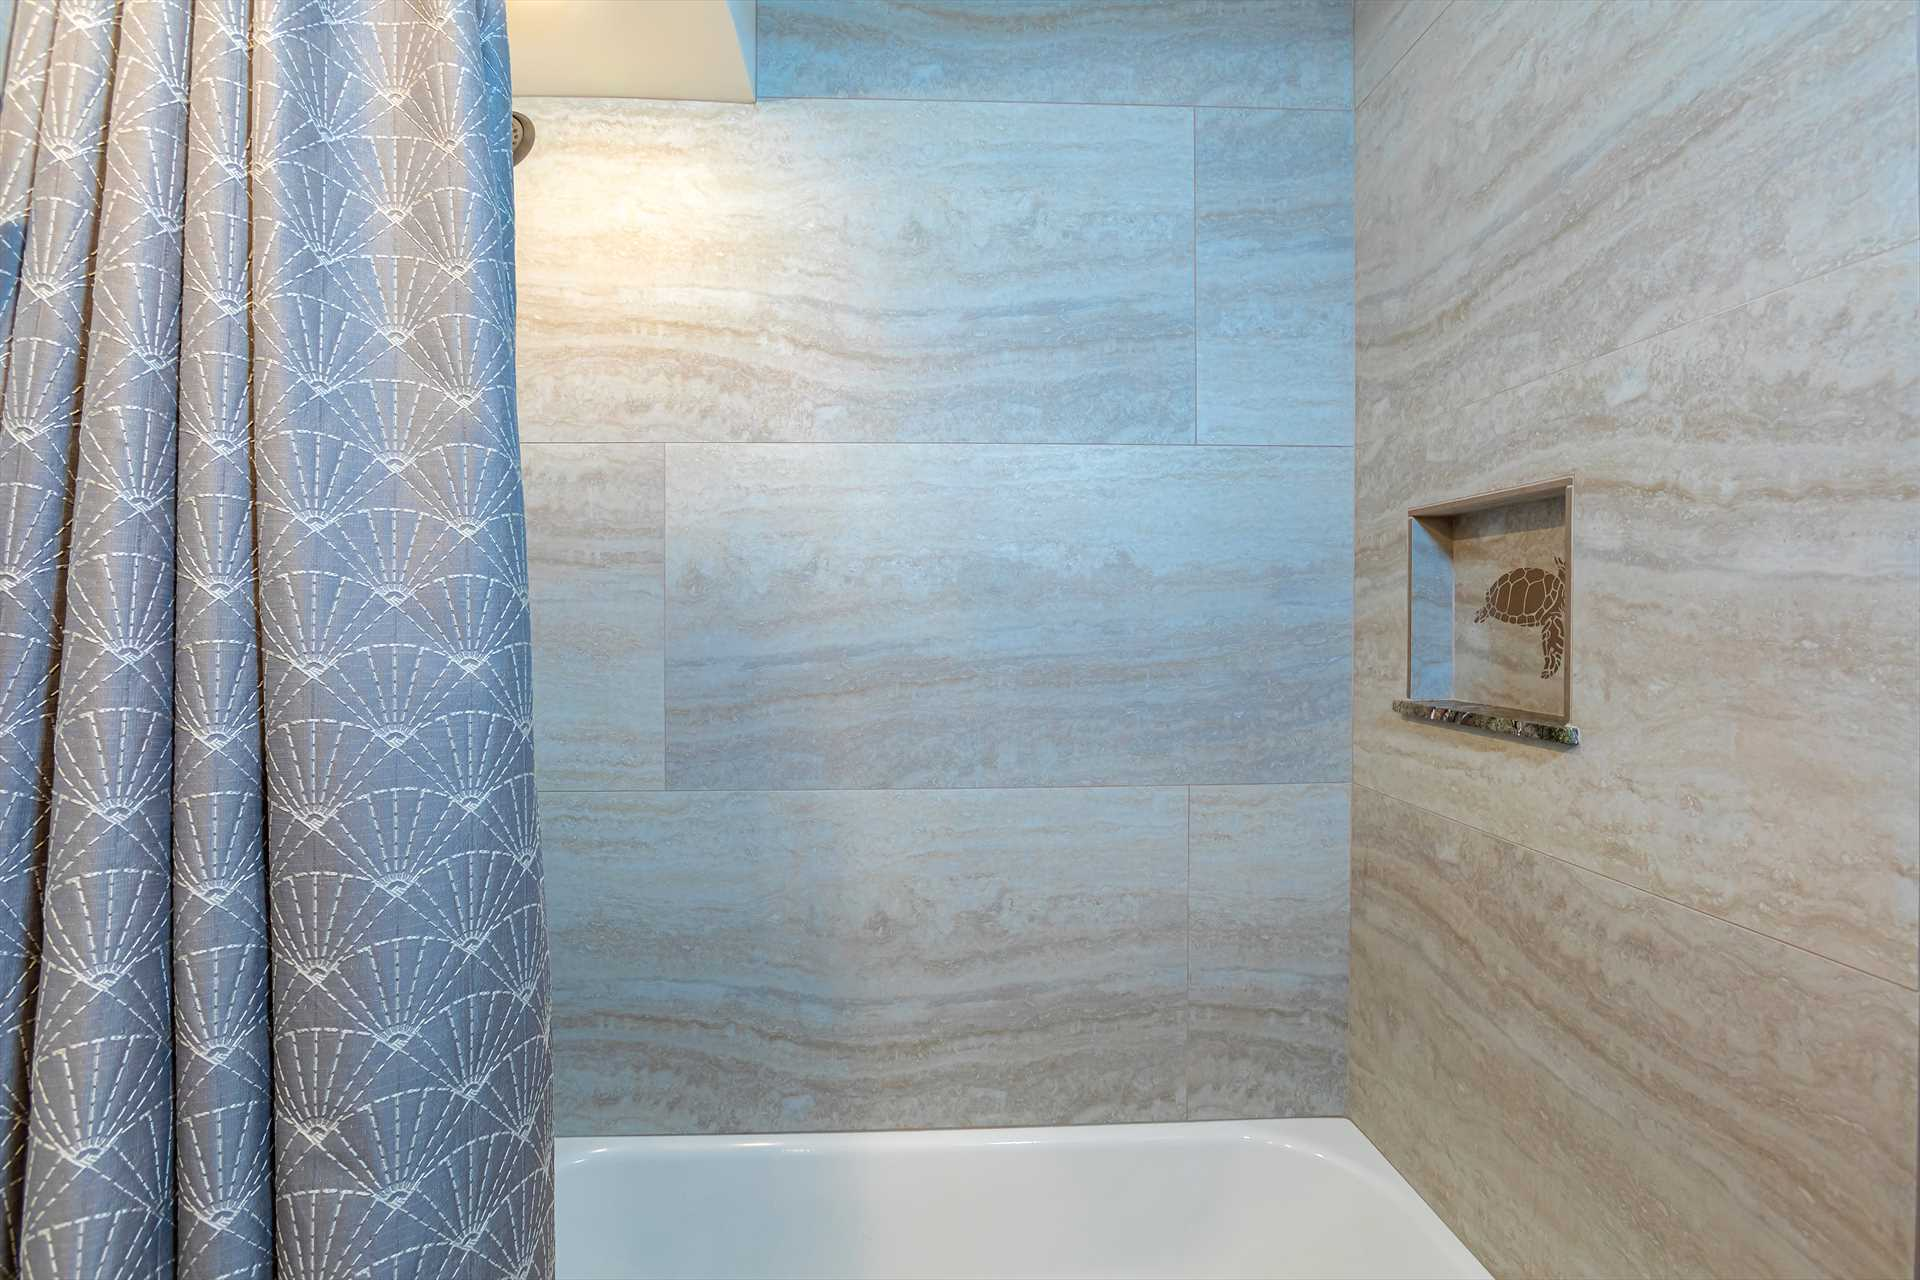 2nd bathroom with tub and shower combination